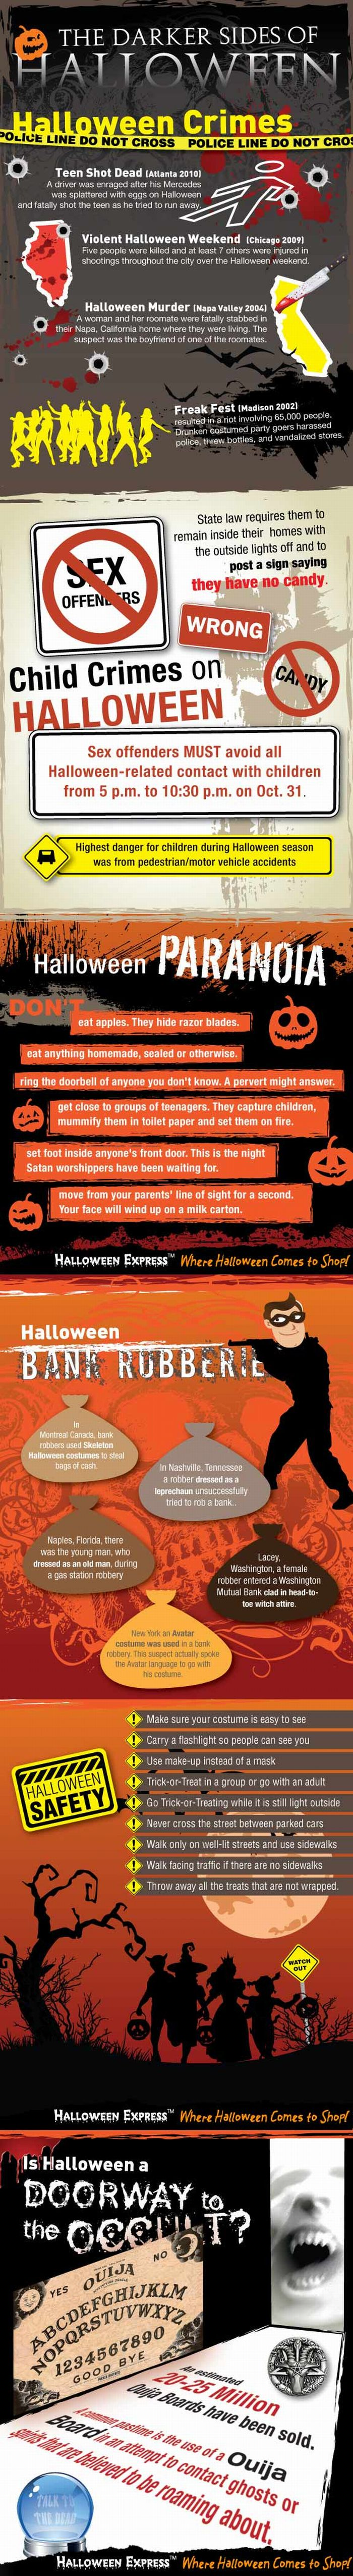 The Darker Side of Halloween (infographic)